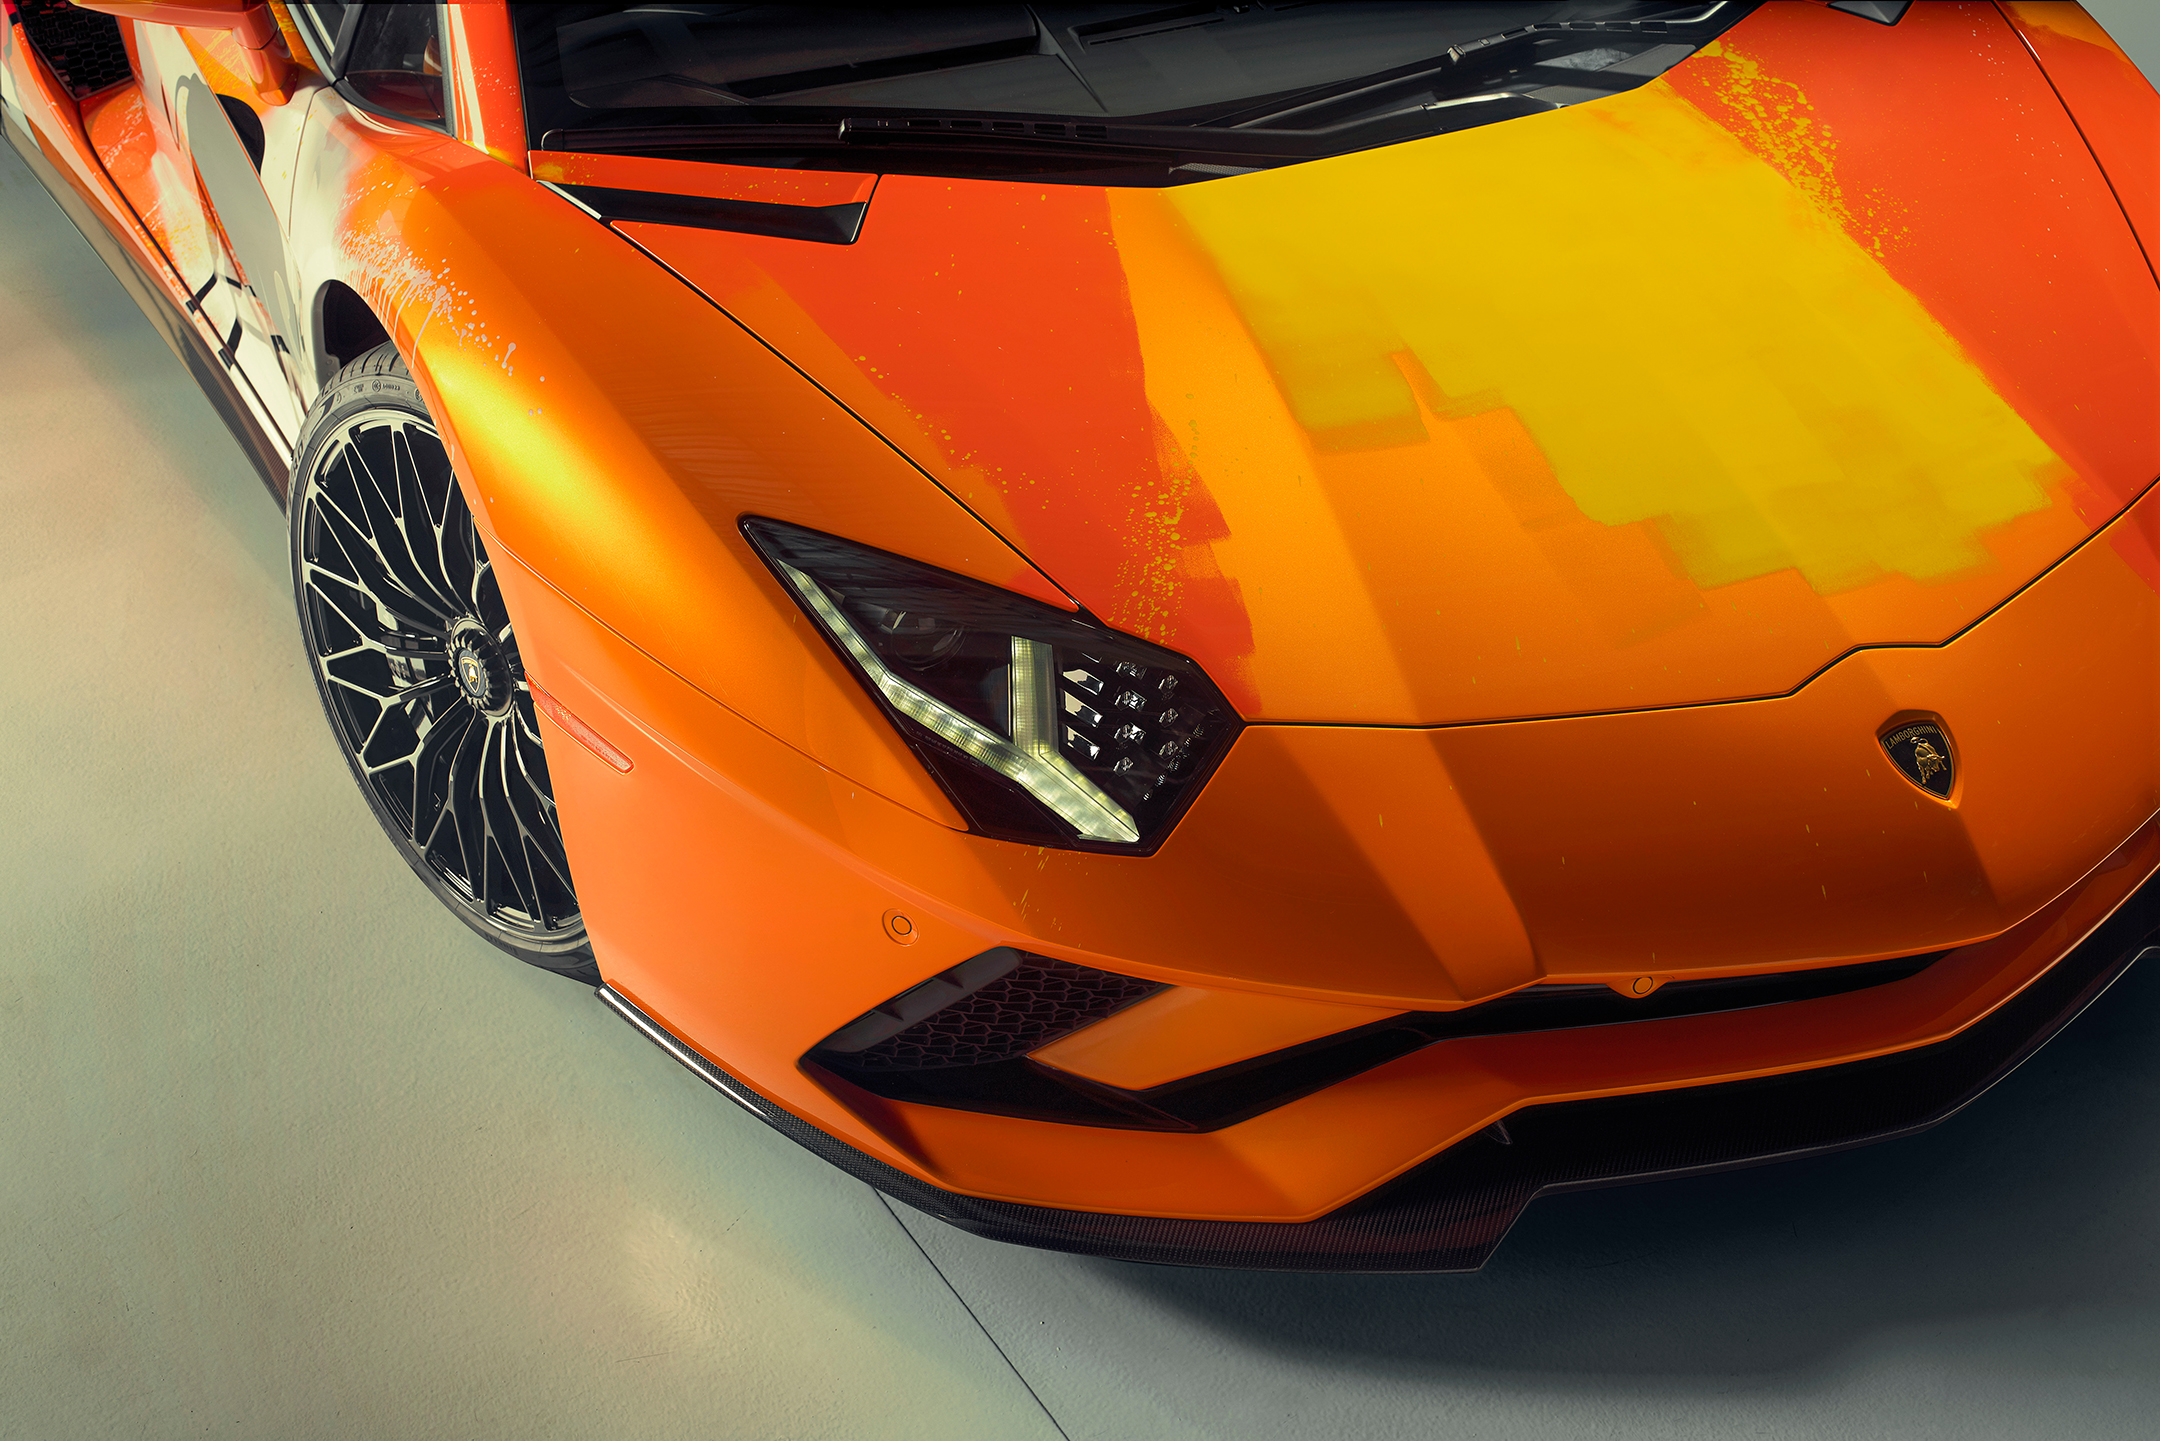 Lamborghini one-off Aventador S by Skyler Grey Art - 2019 - front light